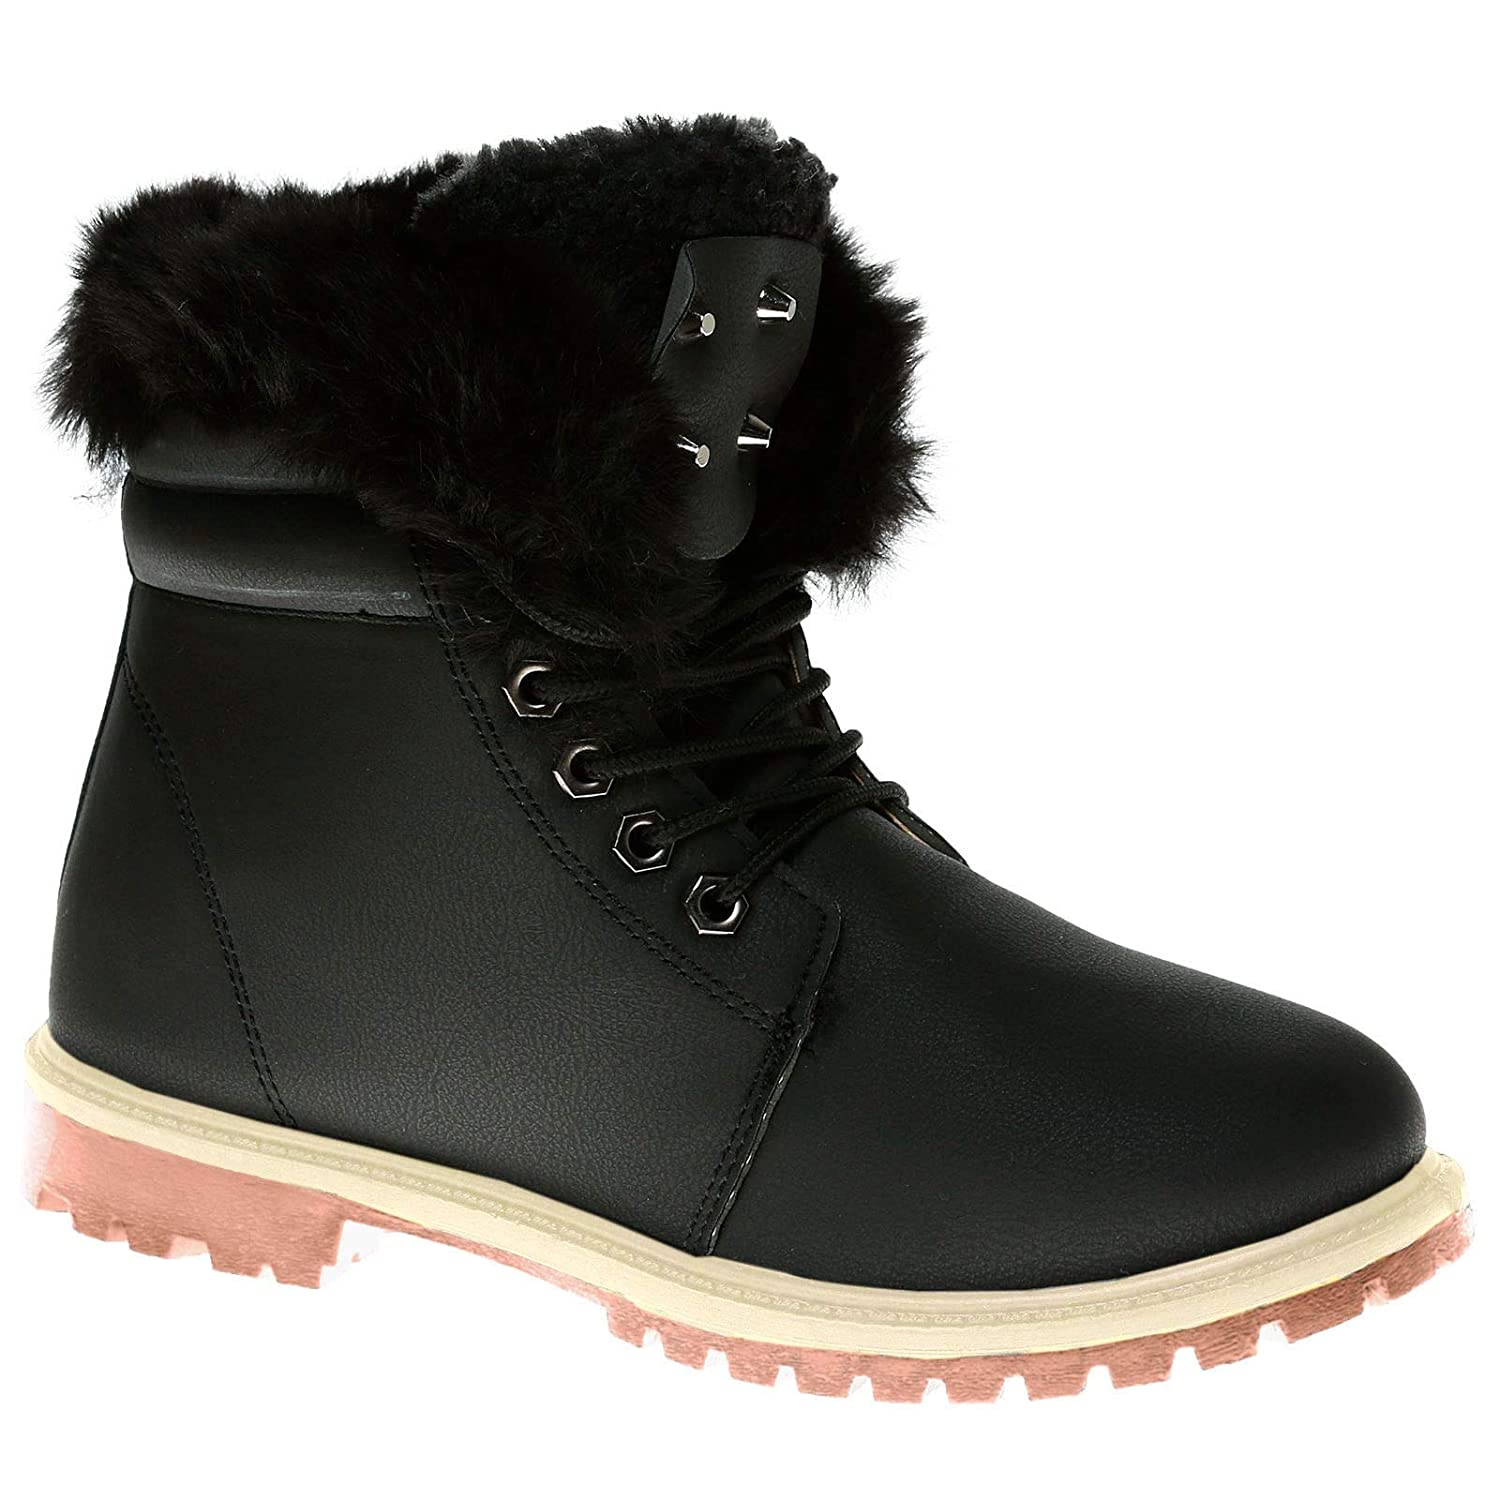 4ebf01ef4d1 Ladies ankle boots womens fur collar flat grip sole army combat warm jpg  1500x1500 Boots ladies